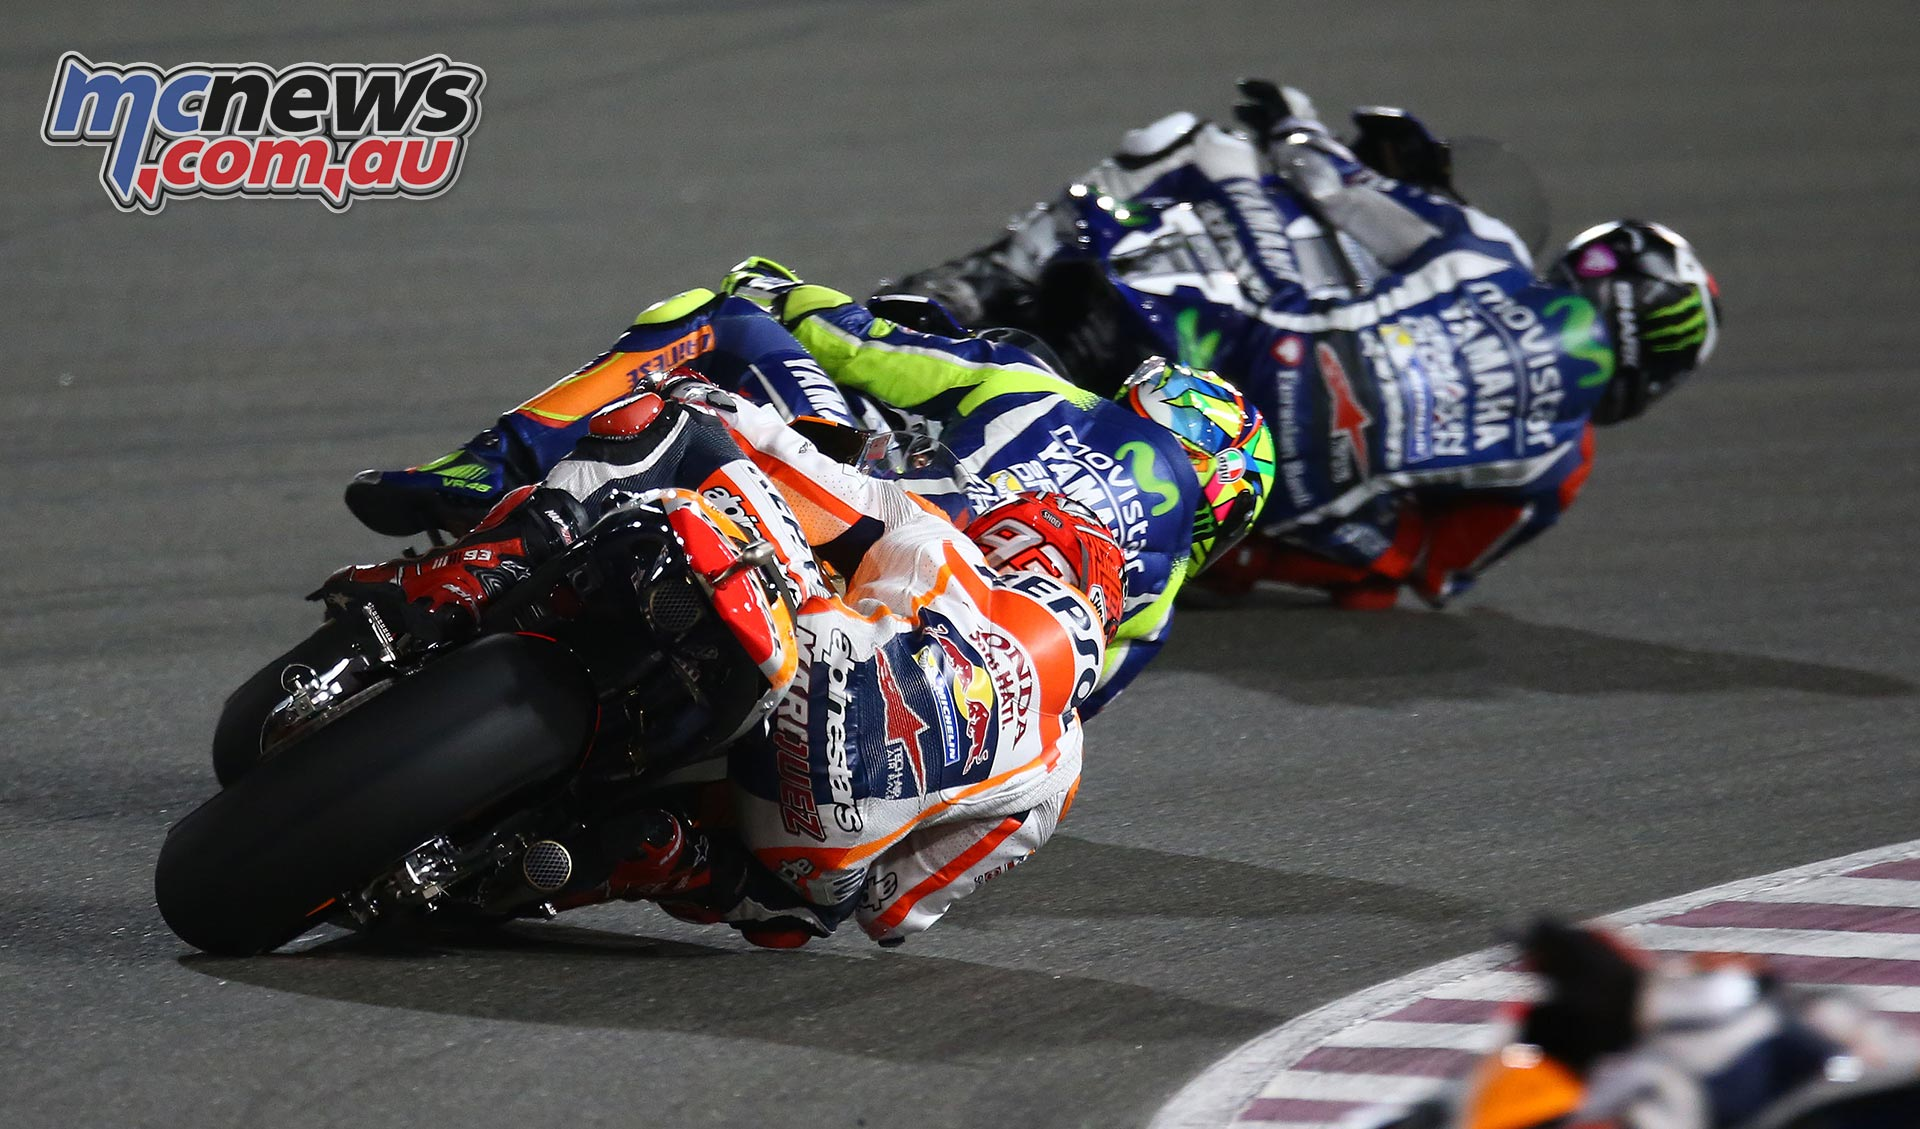 Jorge Lorenzo leads Valentino Rossi and Marc Marquez in Qatar